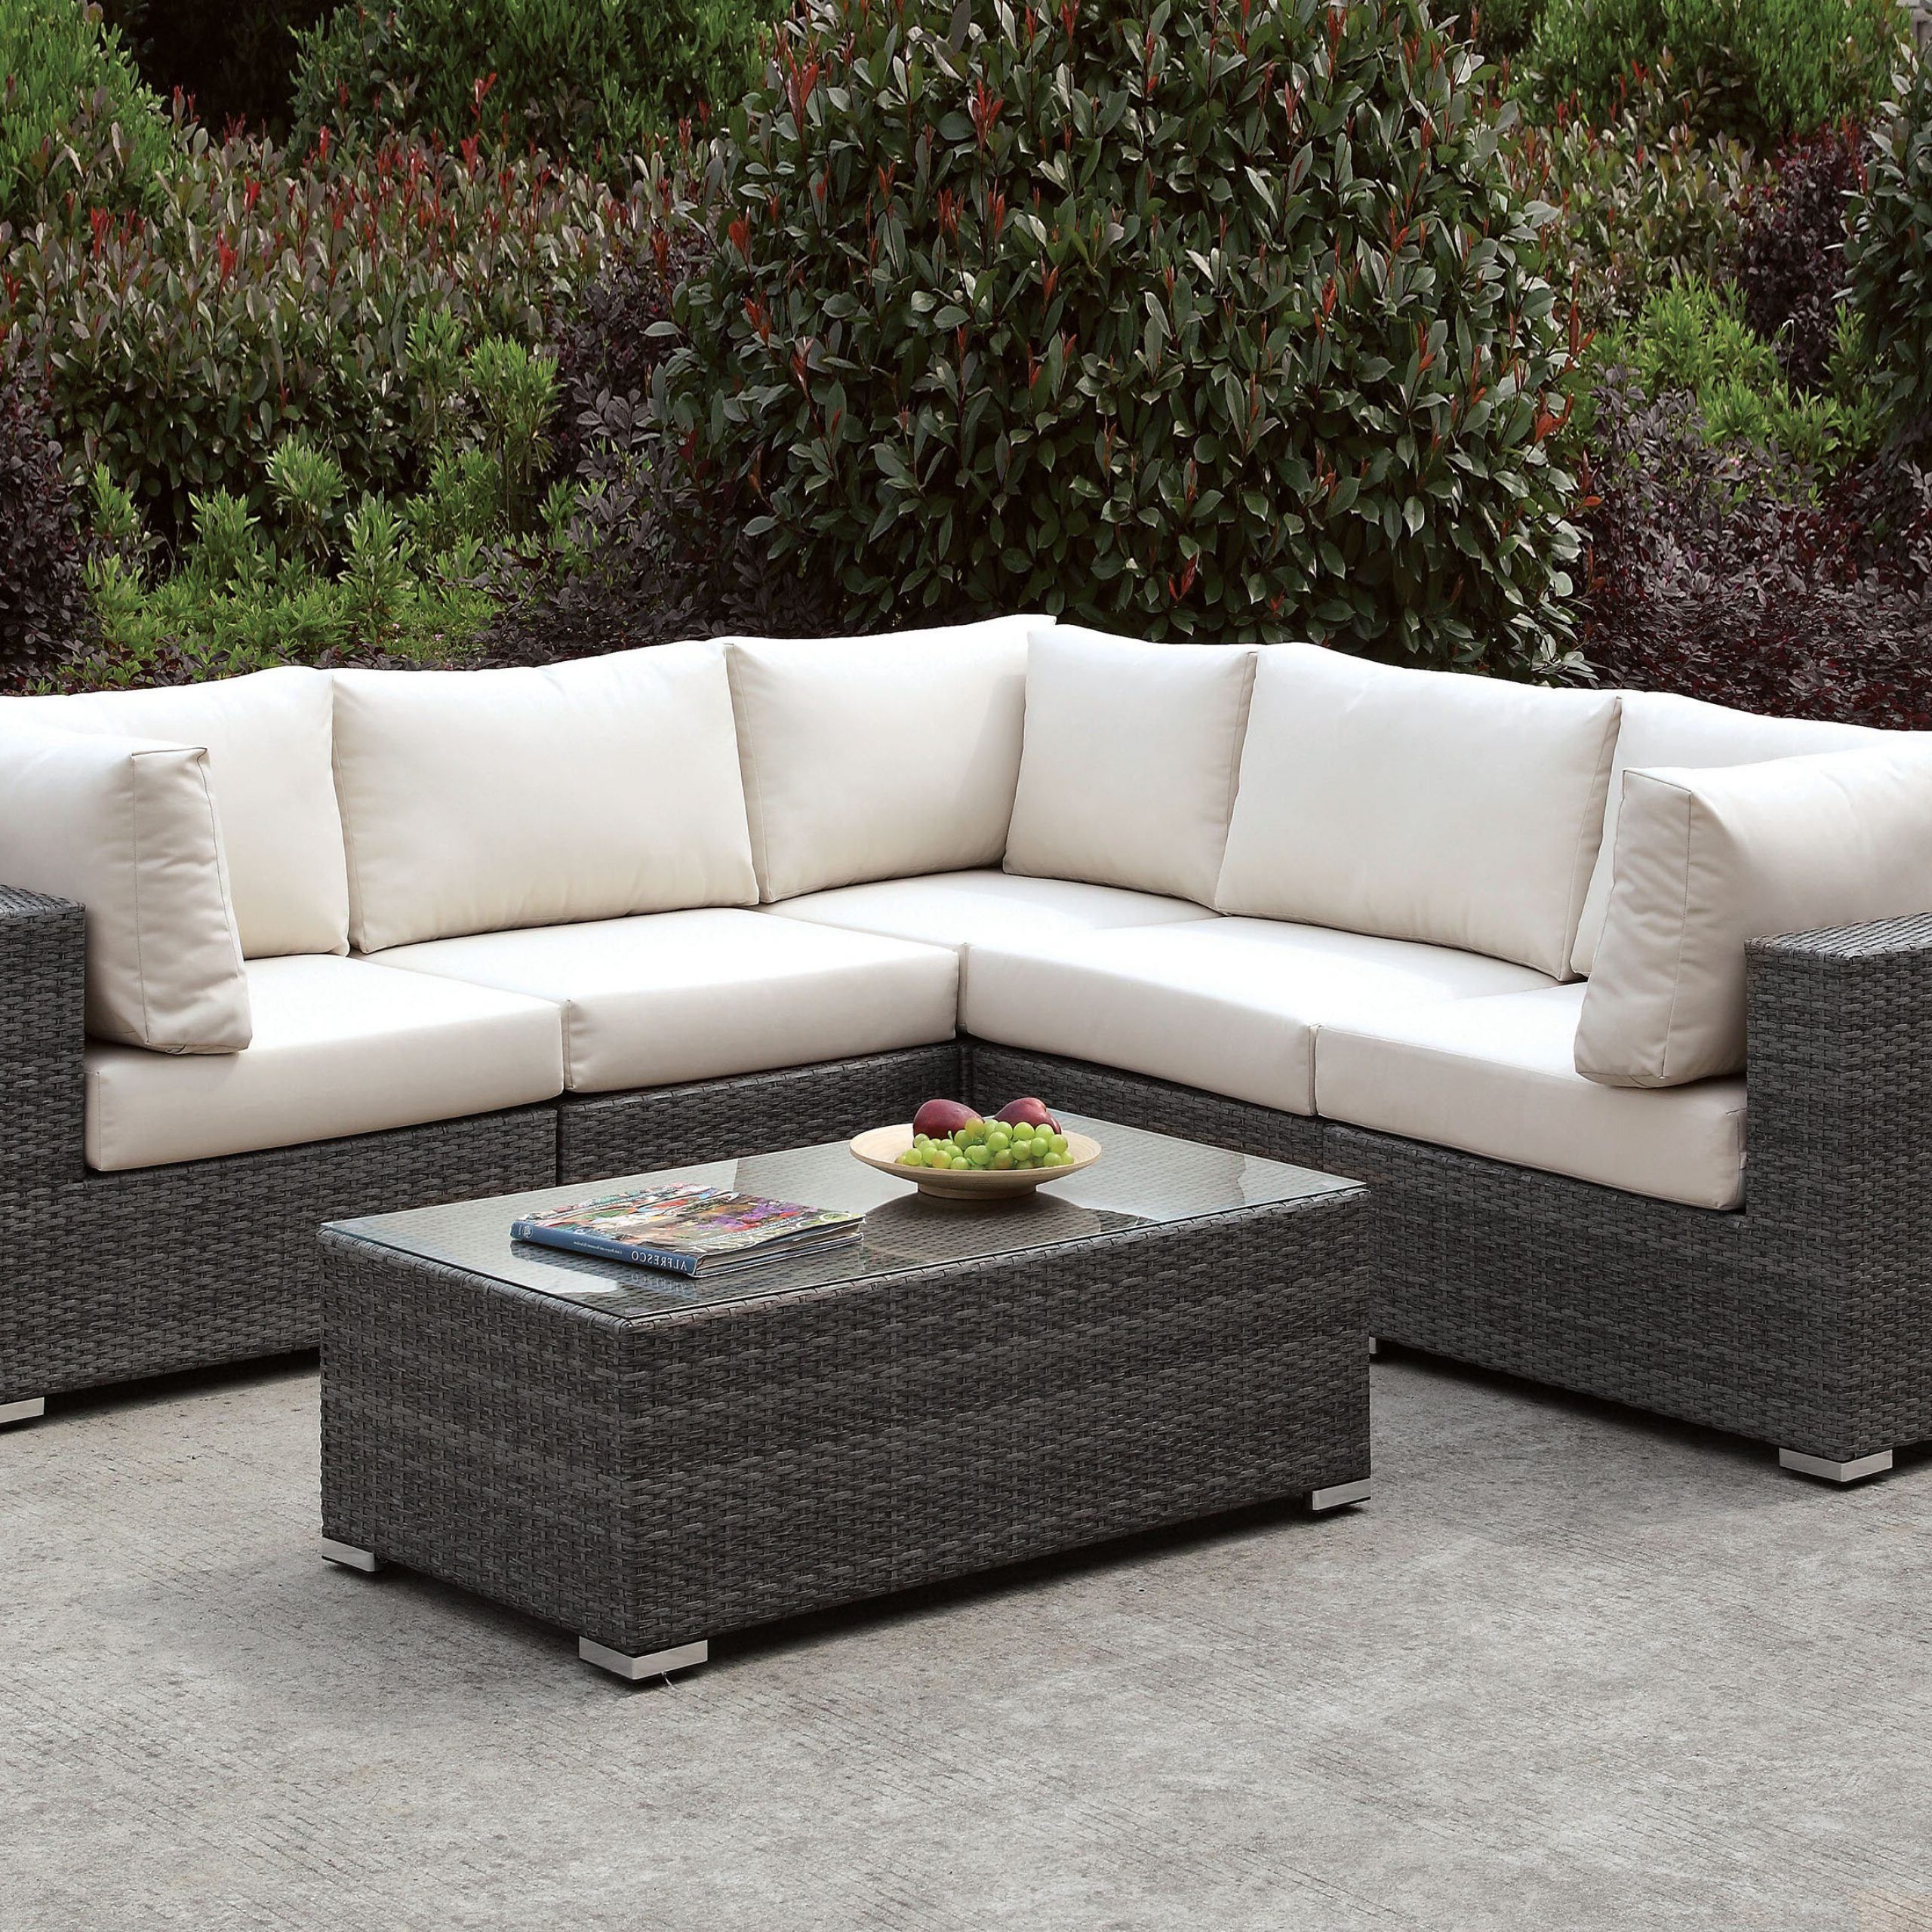 Recent Brayden Studio Peters 7 Piece Patio Sectional With Cushions Within Letona Patio Sectionals With Cushions (Gallery 10 of 25)